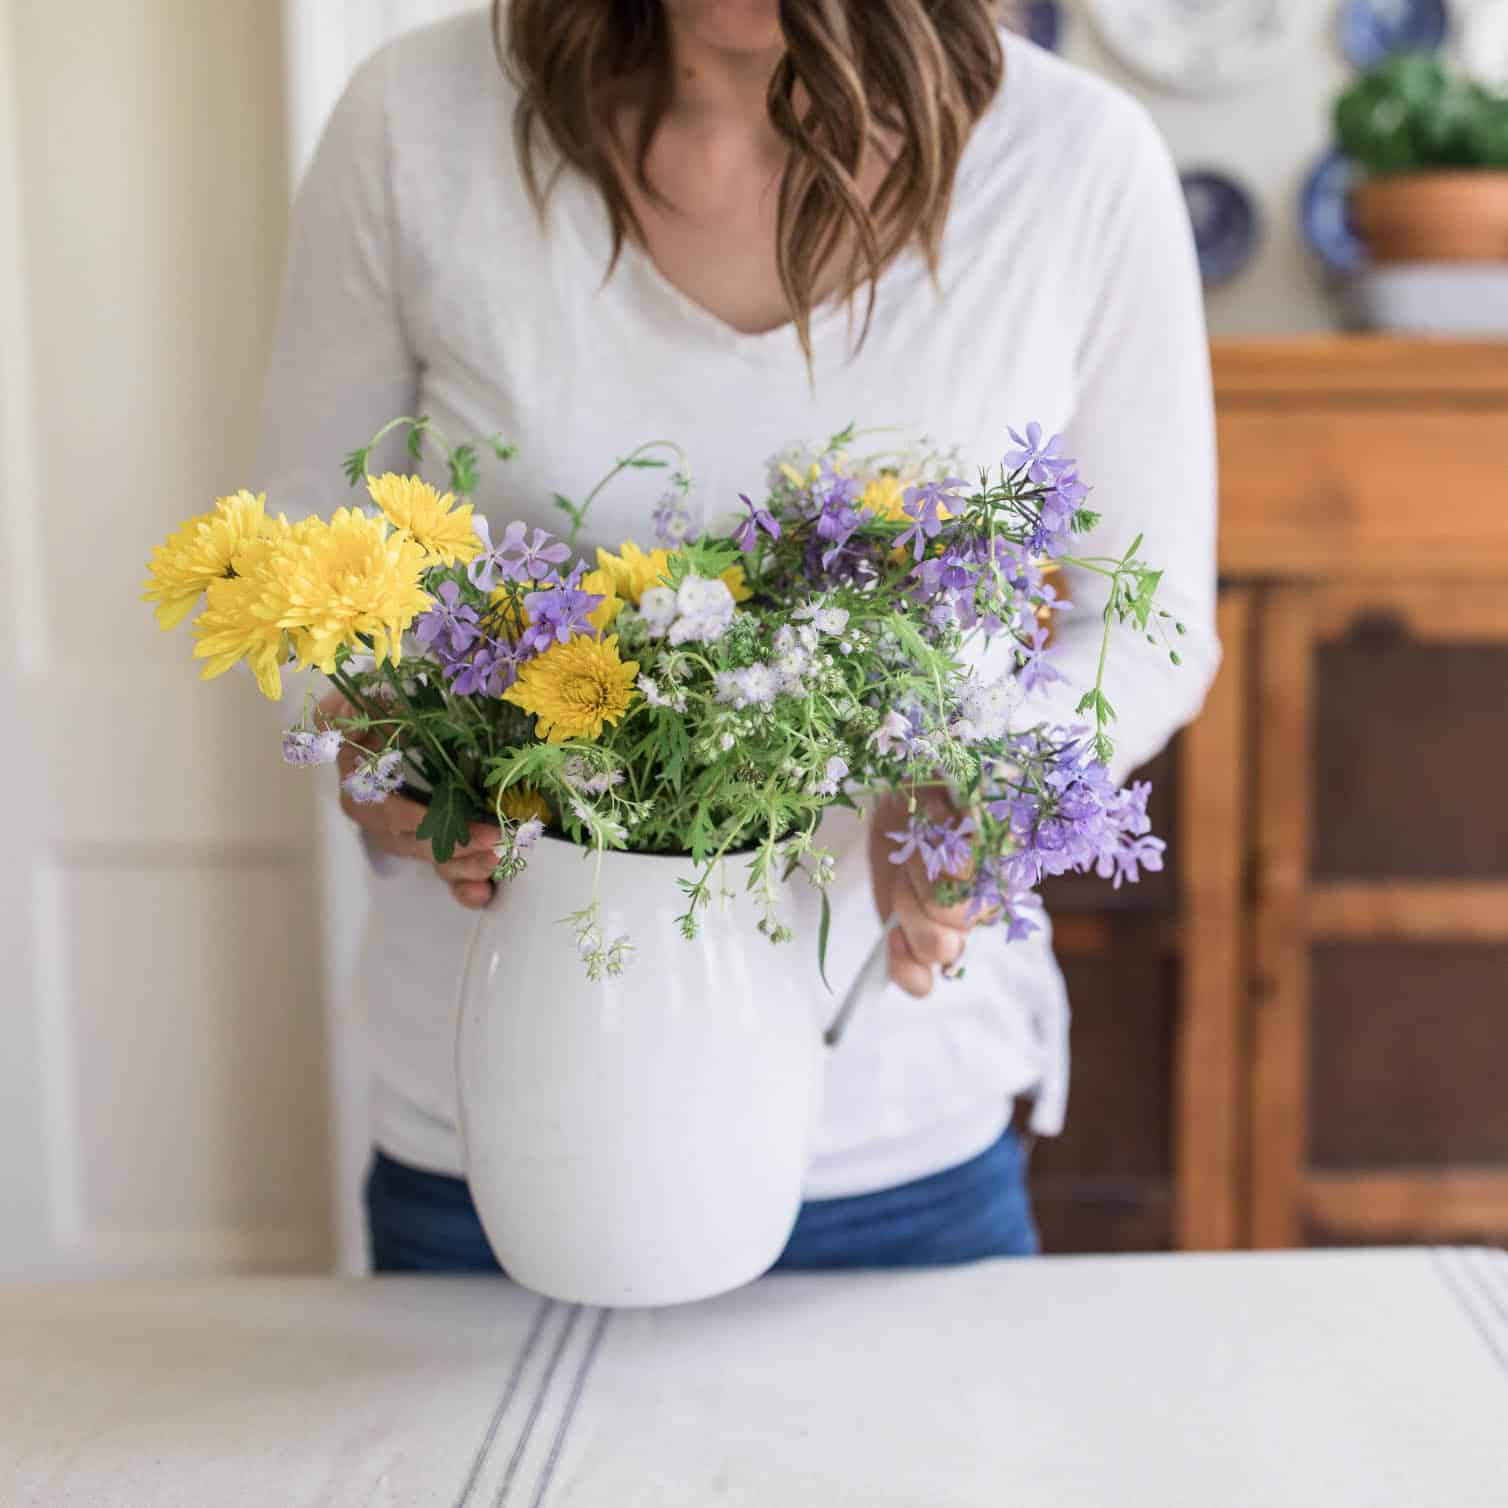 Woman holding white vase with yellow and purple flowers